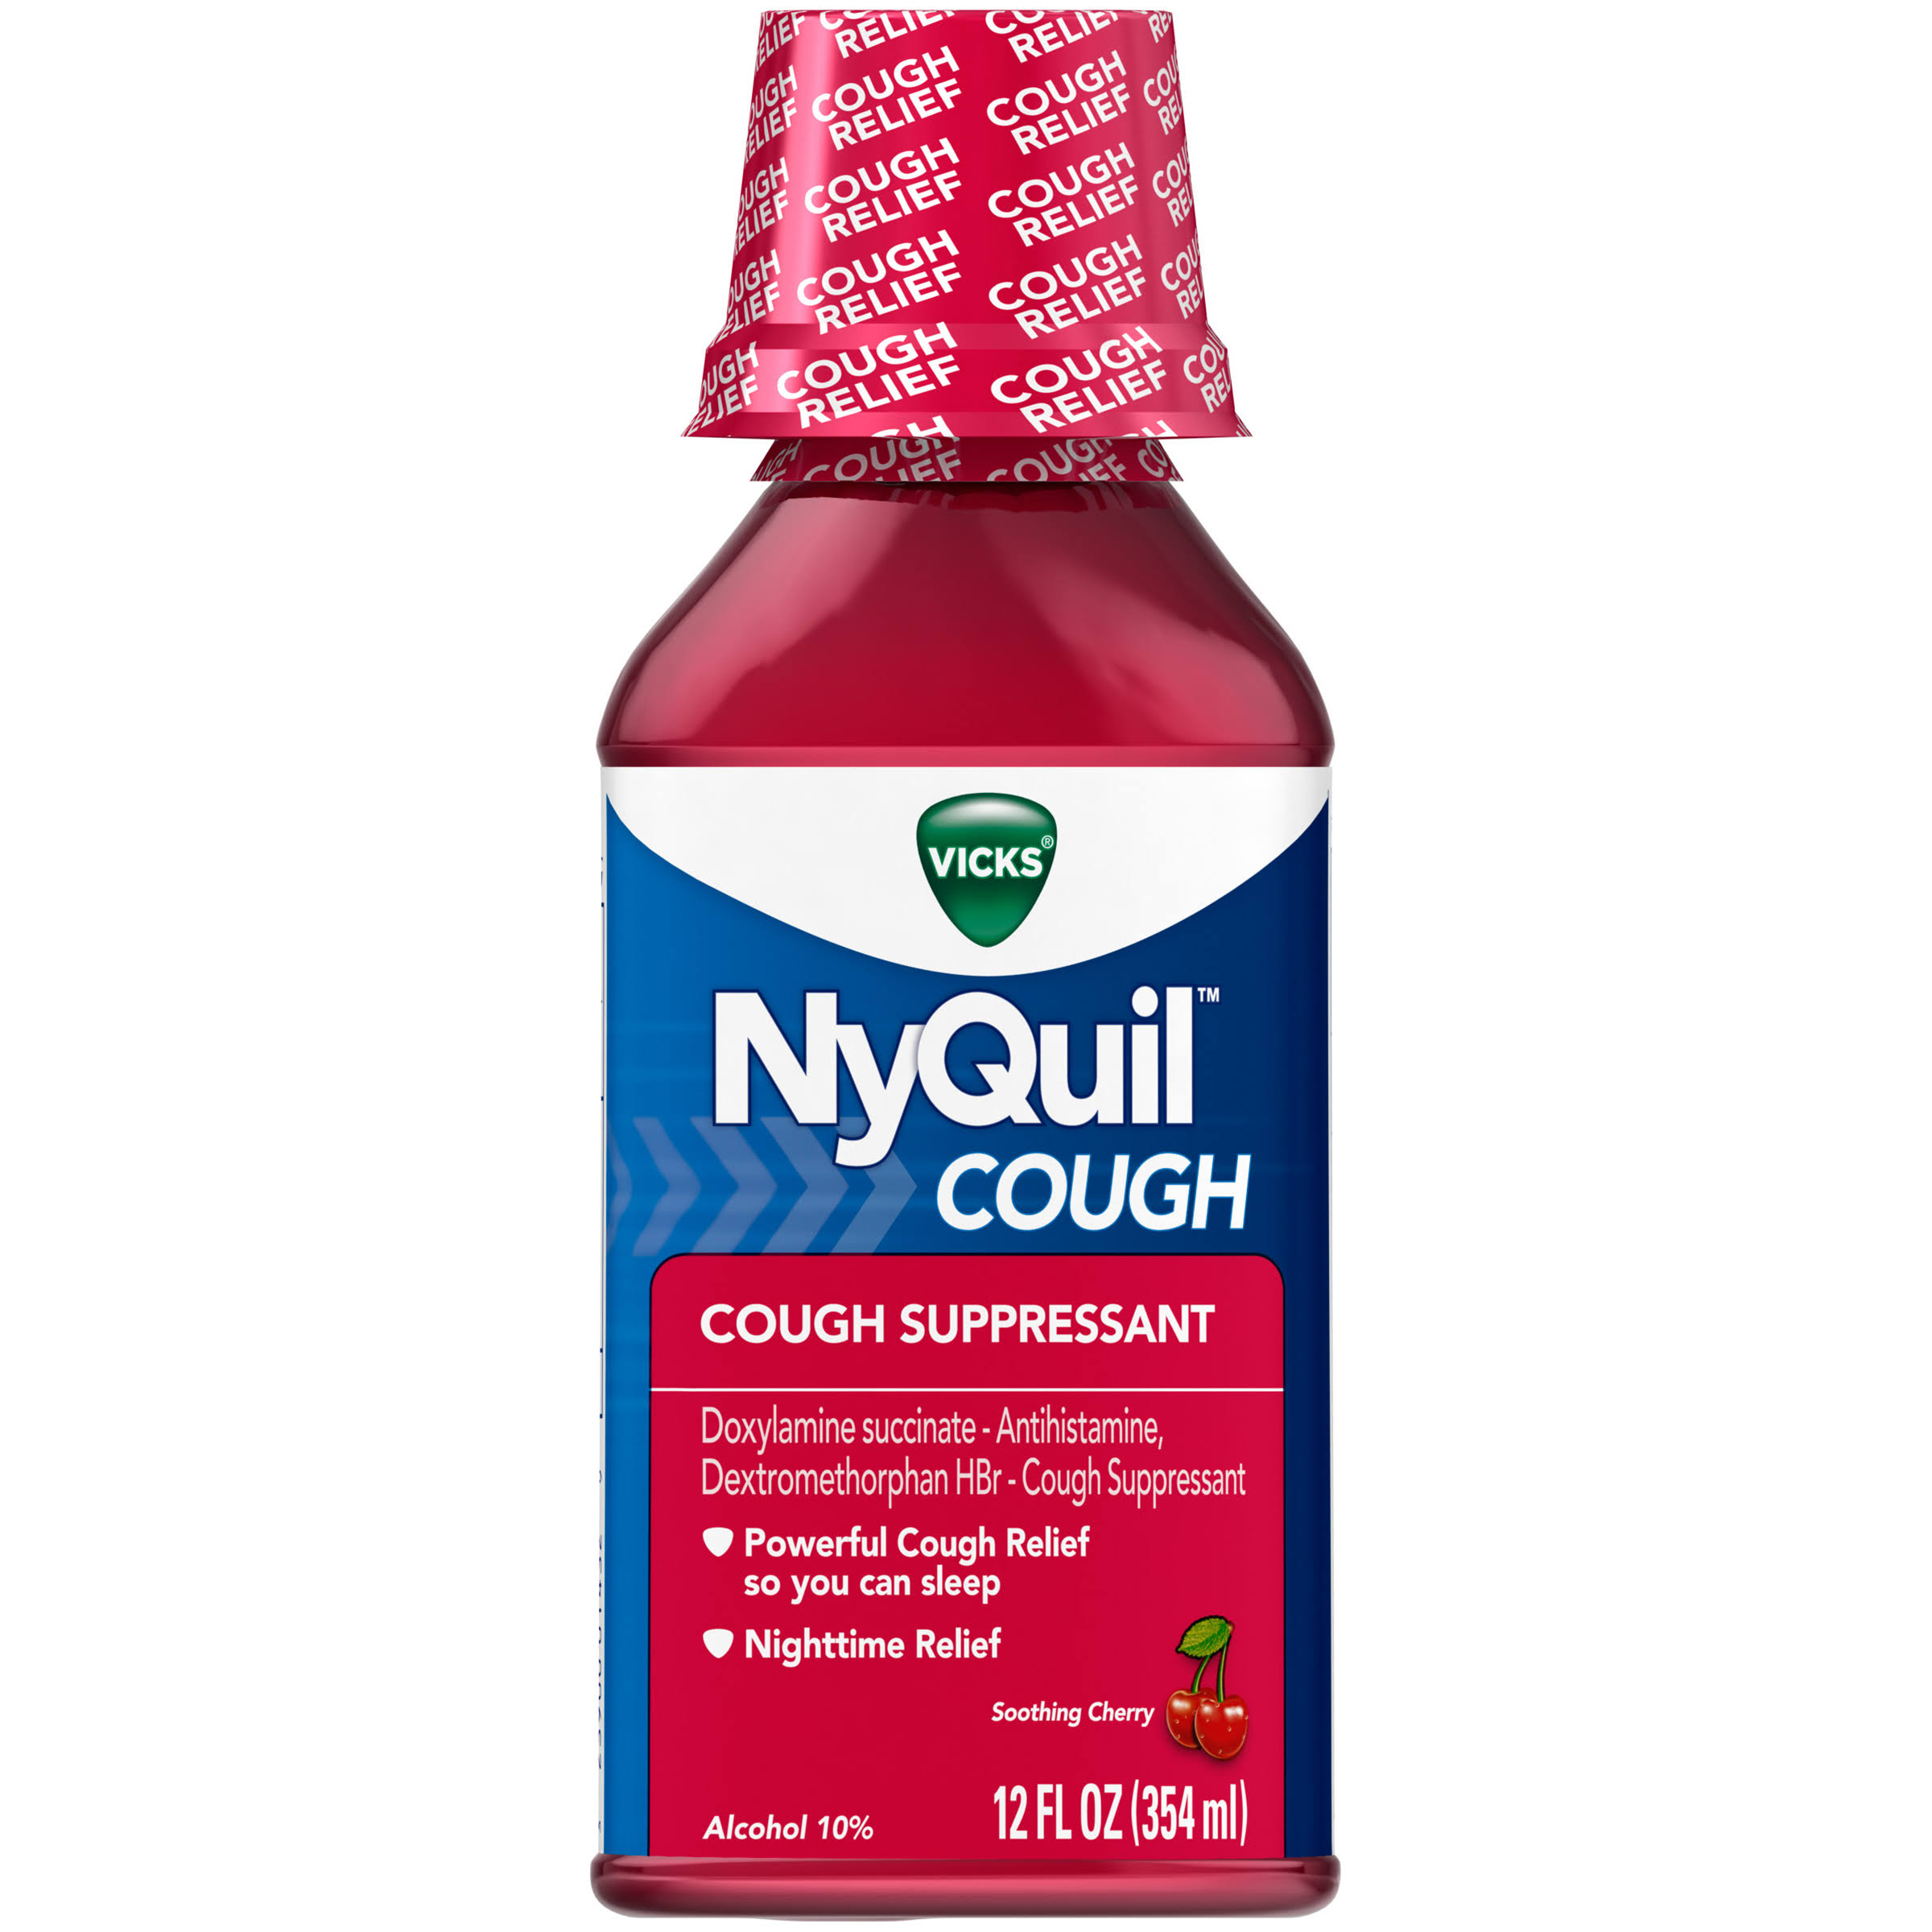 Vicks Nyquil Cough Nighttime Relief Liquid - Cherry Flavor, 12oz